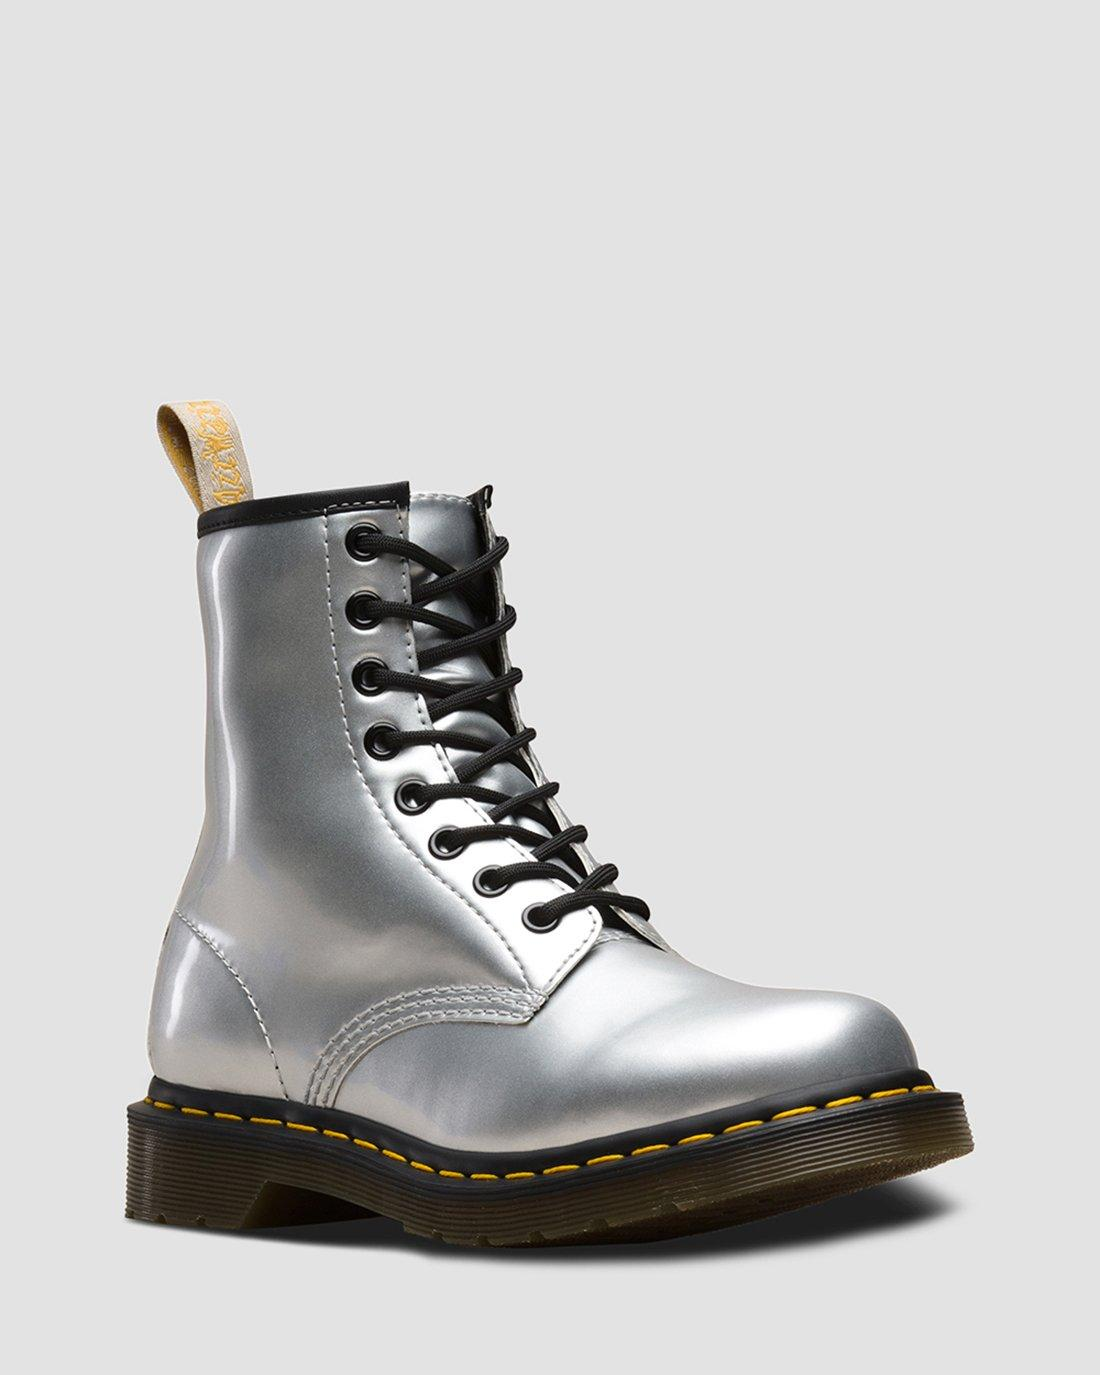 1460 Chrome vegan | Dr. Martens France